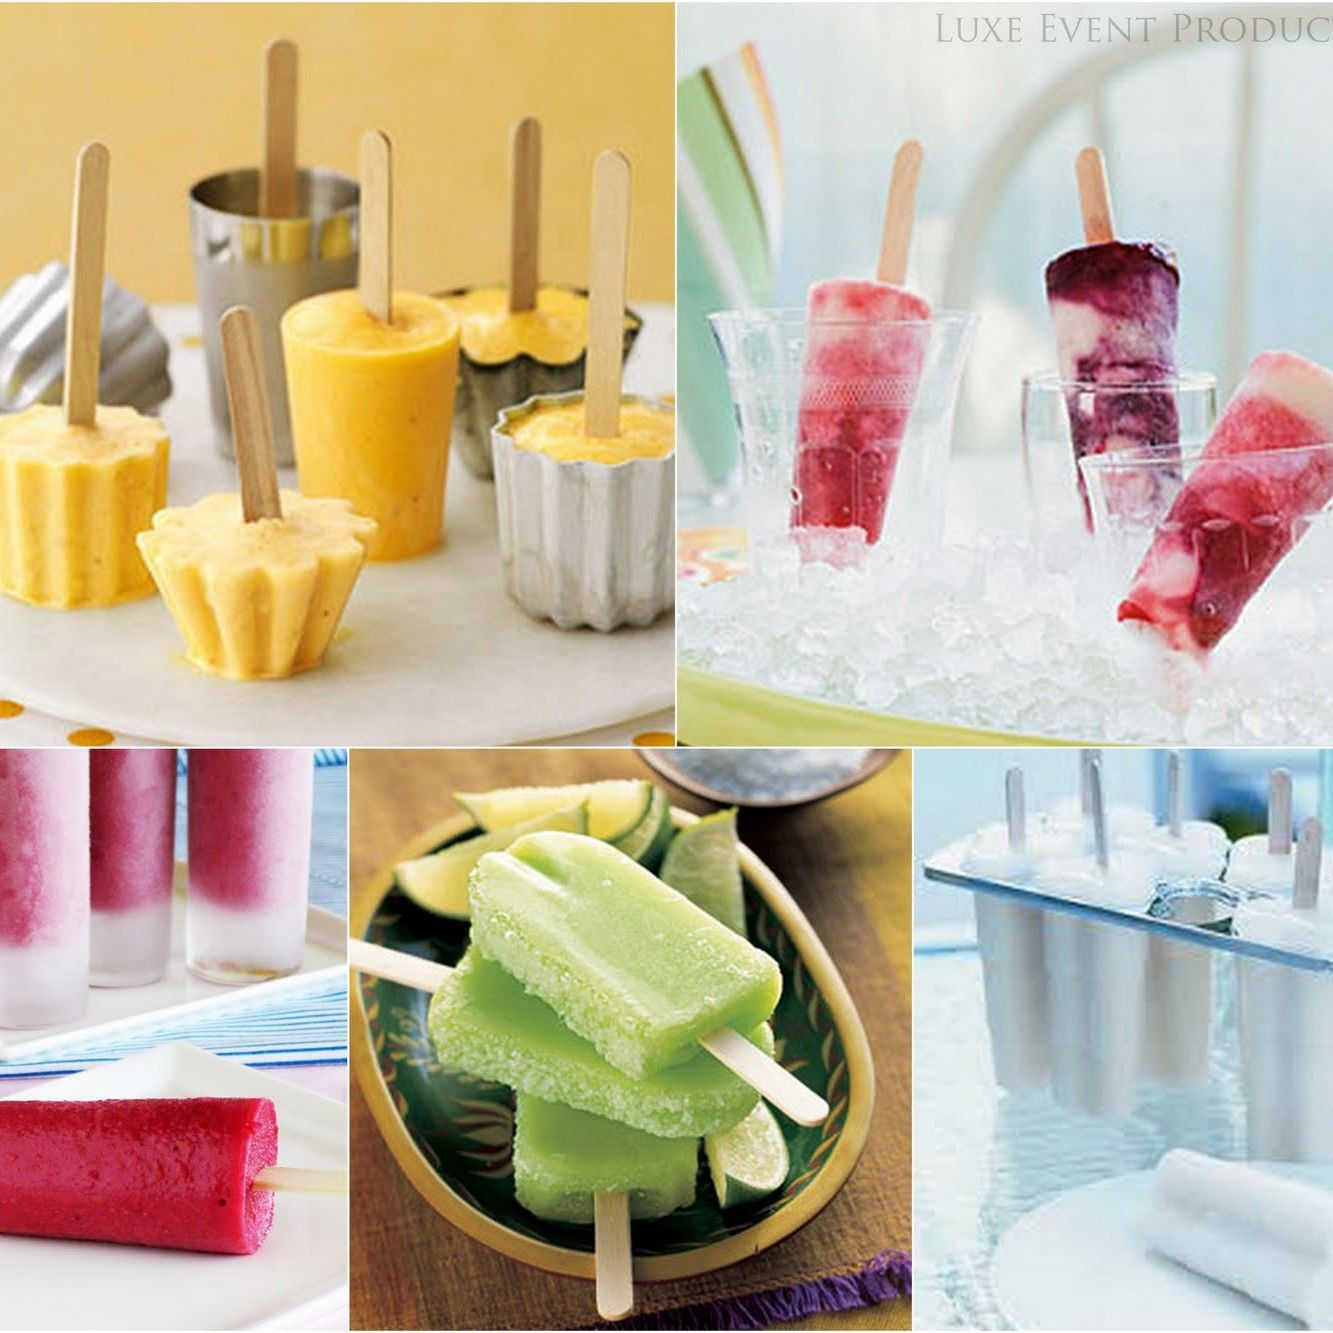 Summer Wedding Food: Some Cocktail Popsicle Recipes For A Summer Wedding